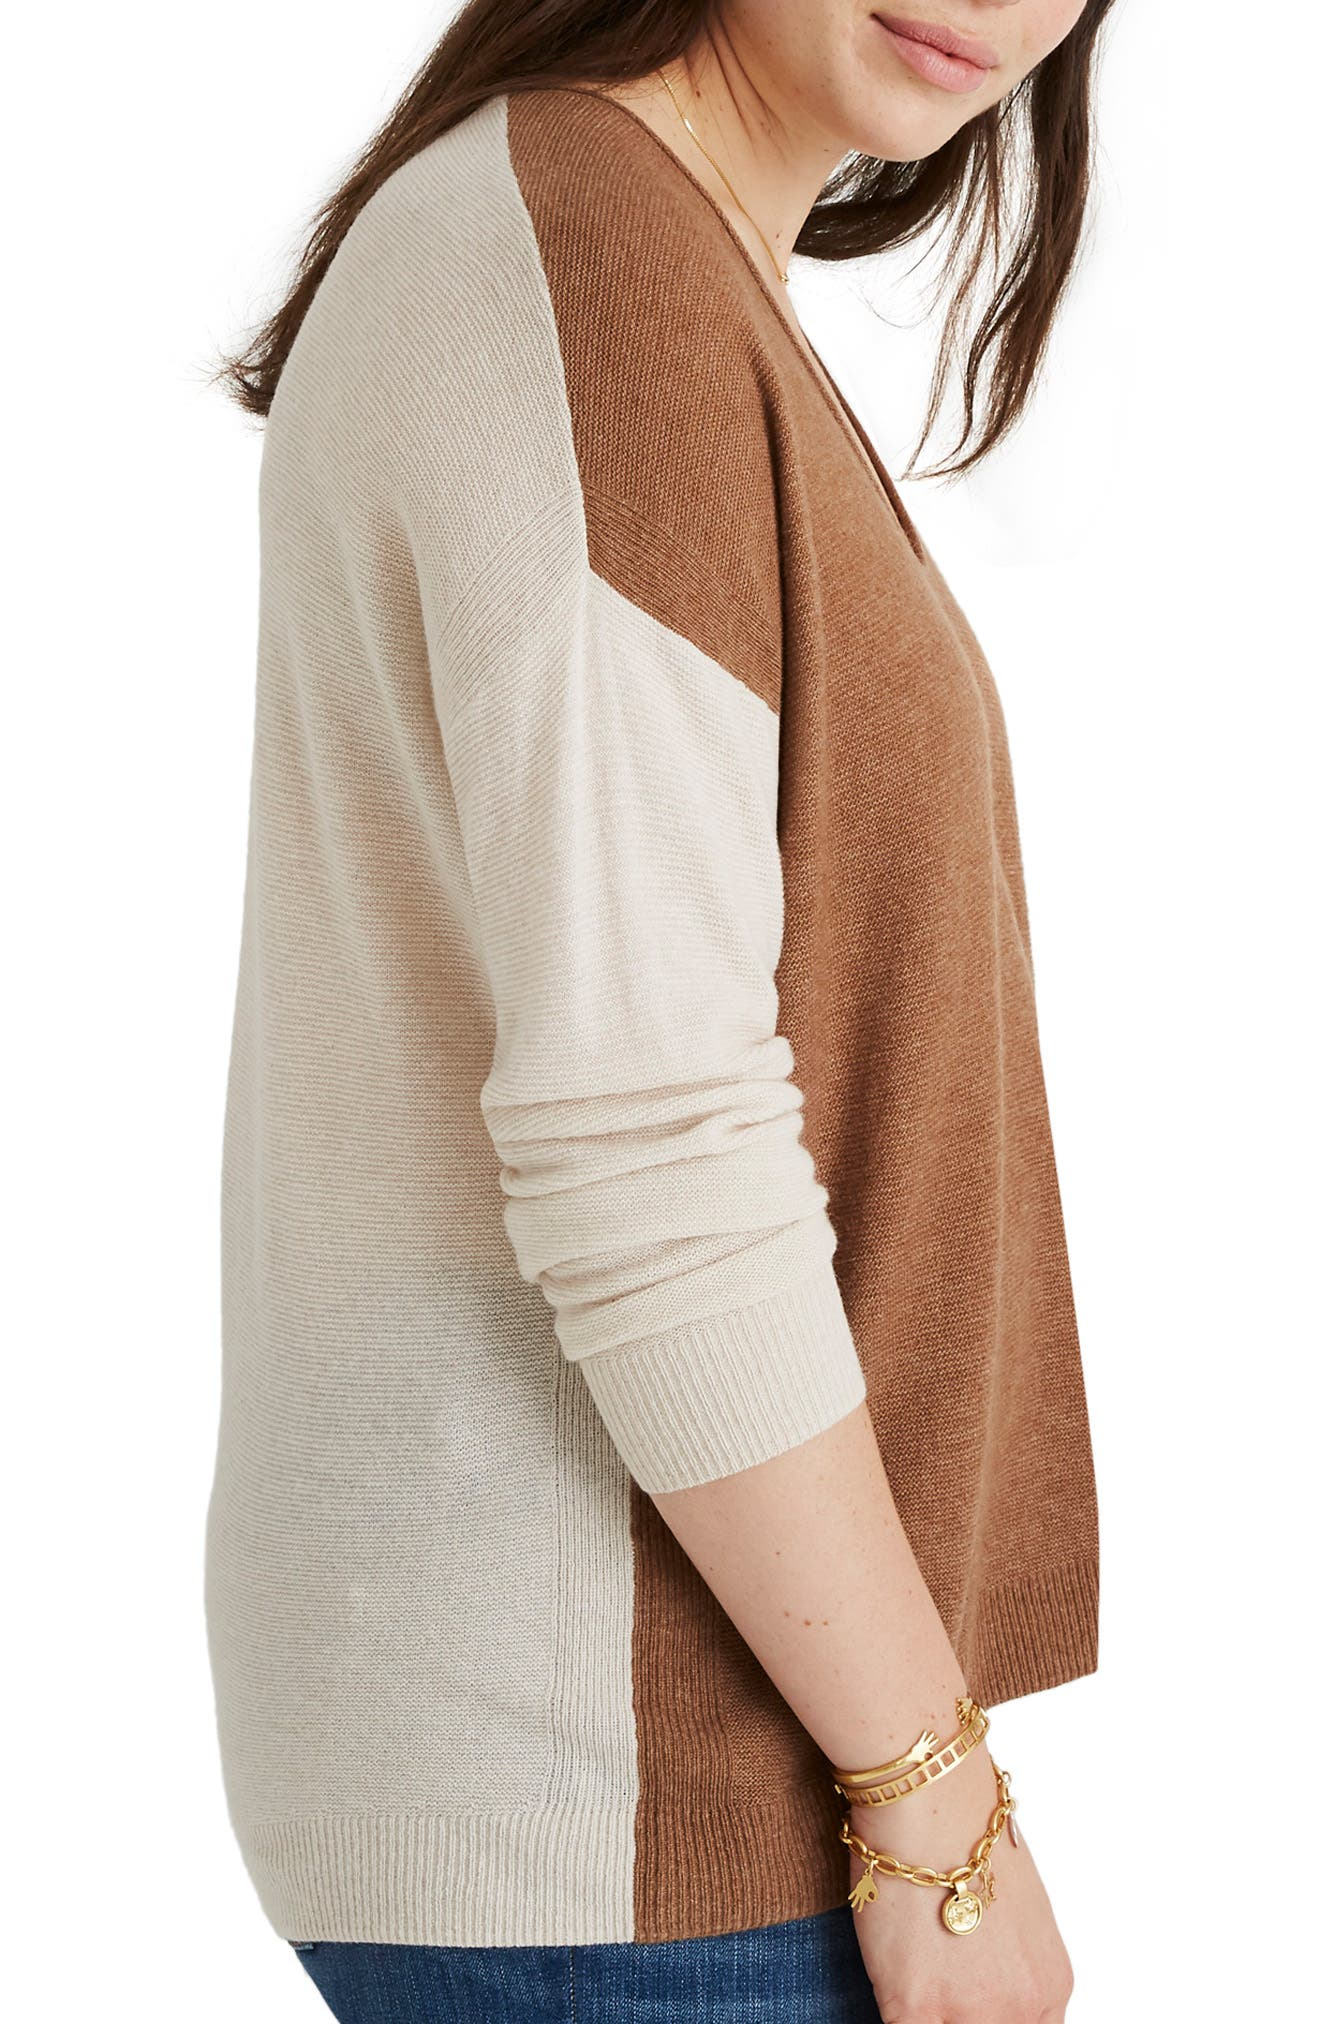 MADEWELL, Kimball Colorblock Sweater, Alternate thumbnail 8, color, 021